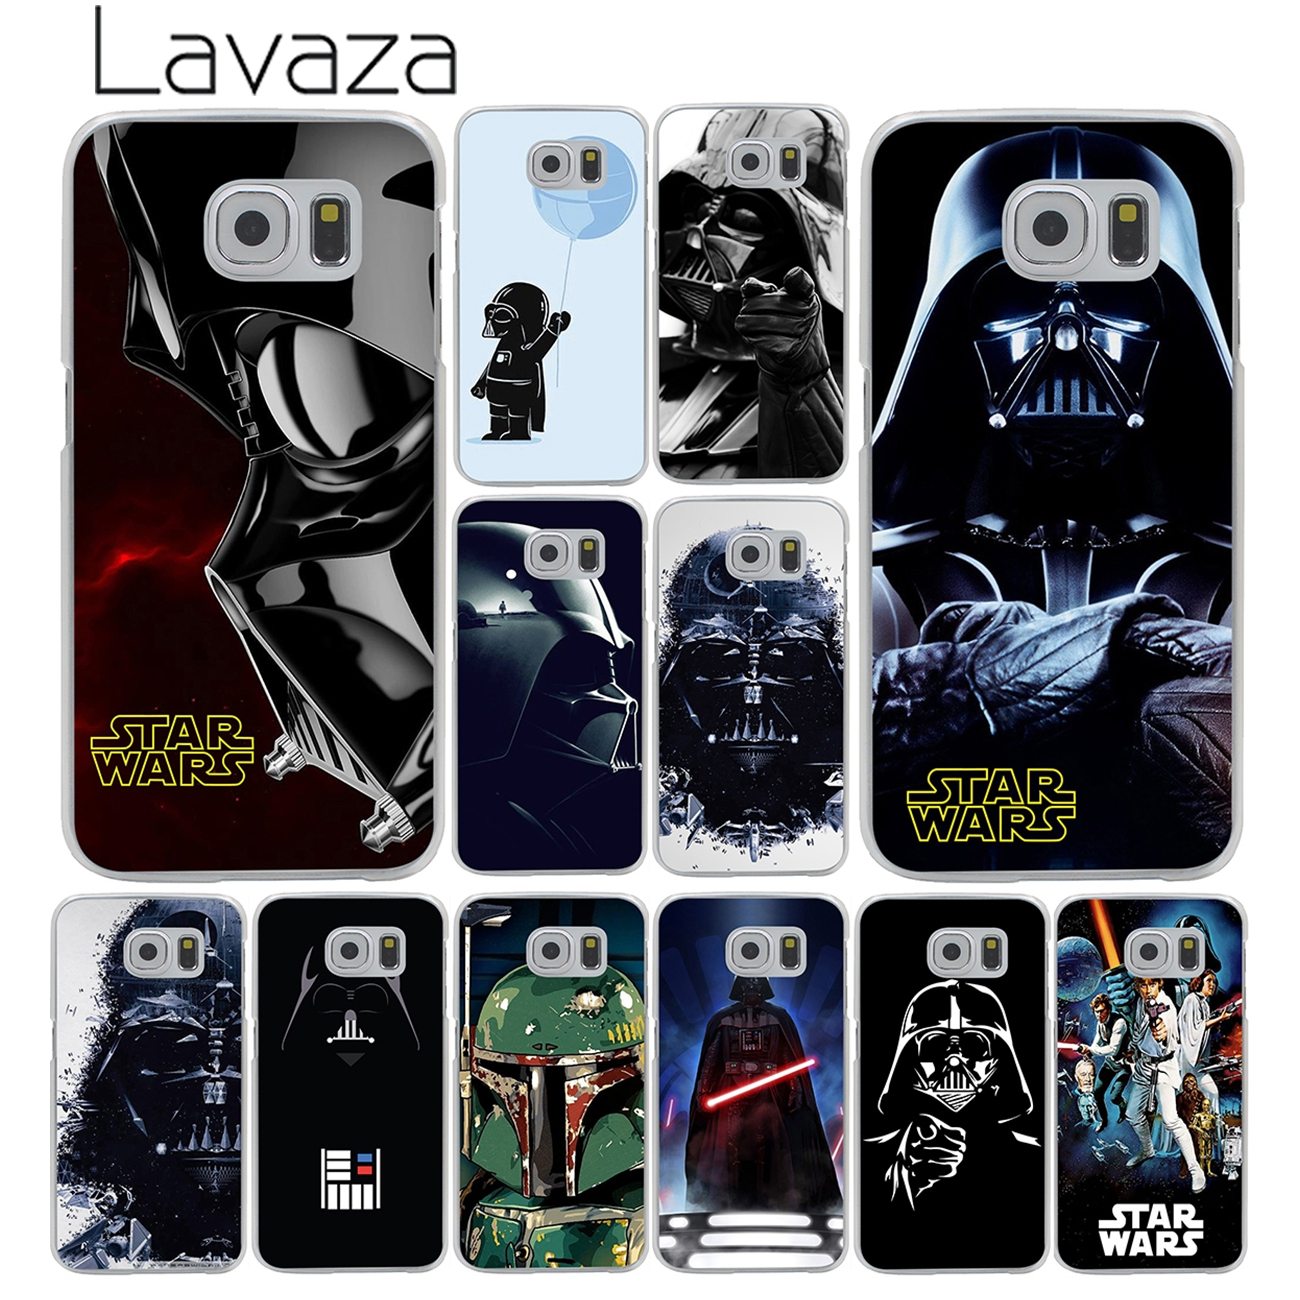 Lavaza Darth vader Star wars Child in the brain Hard Transparent Phone Case for Samsung Galaxy S8 S9 Plus S3 S4 S5 S6 S7 Edge